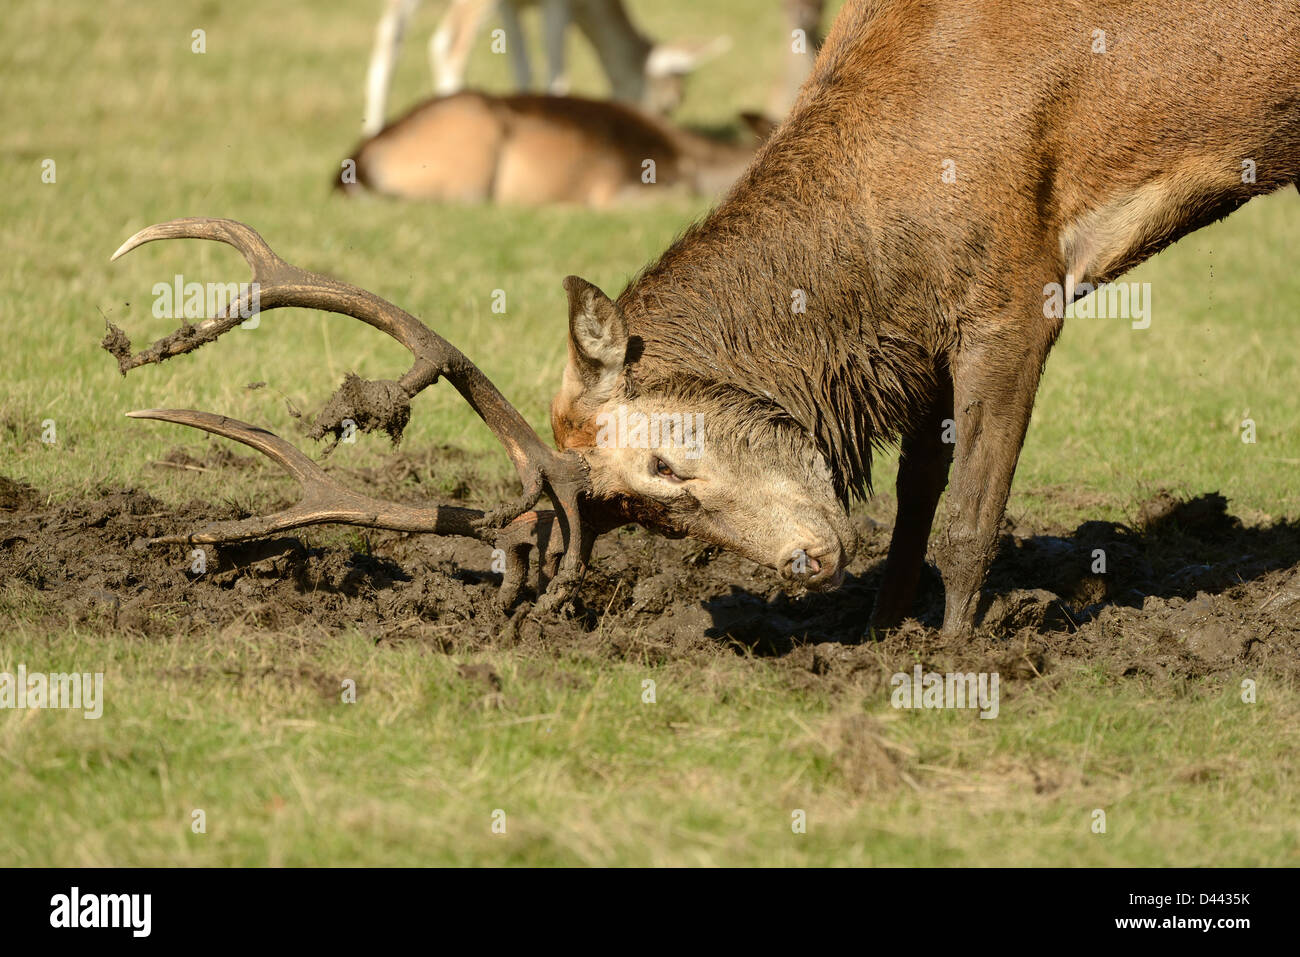 Red Deer (Cervus elaphus) stag covering antlers in mud during the rut, Richmond Park, England, October - Stock Image